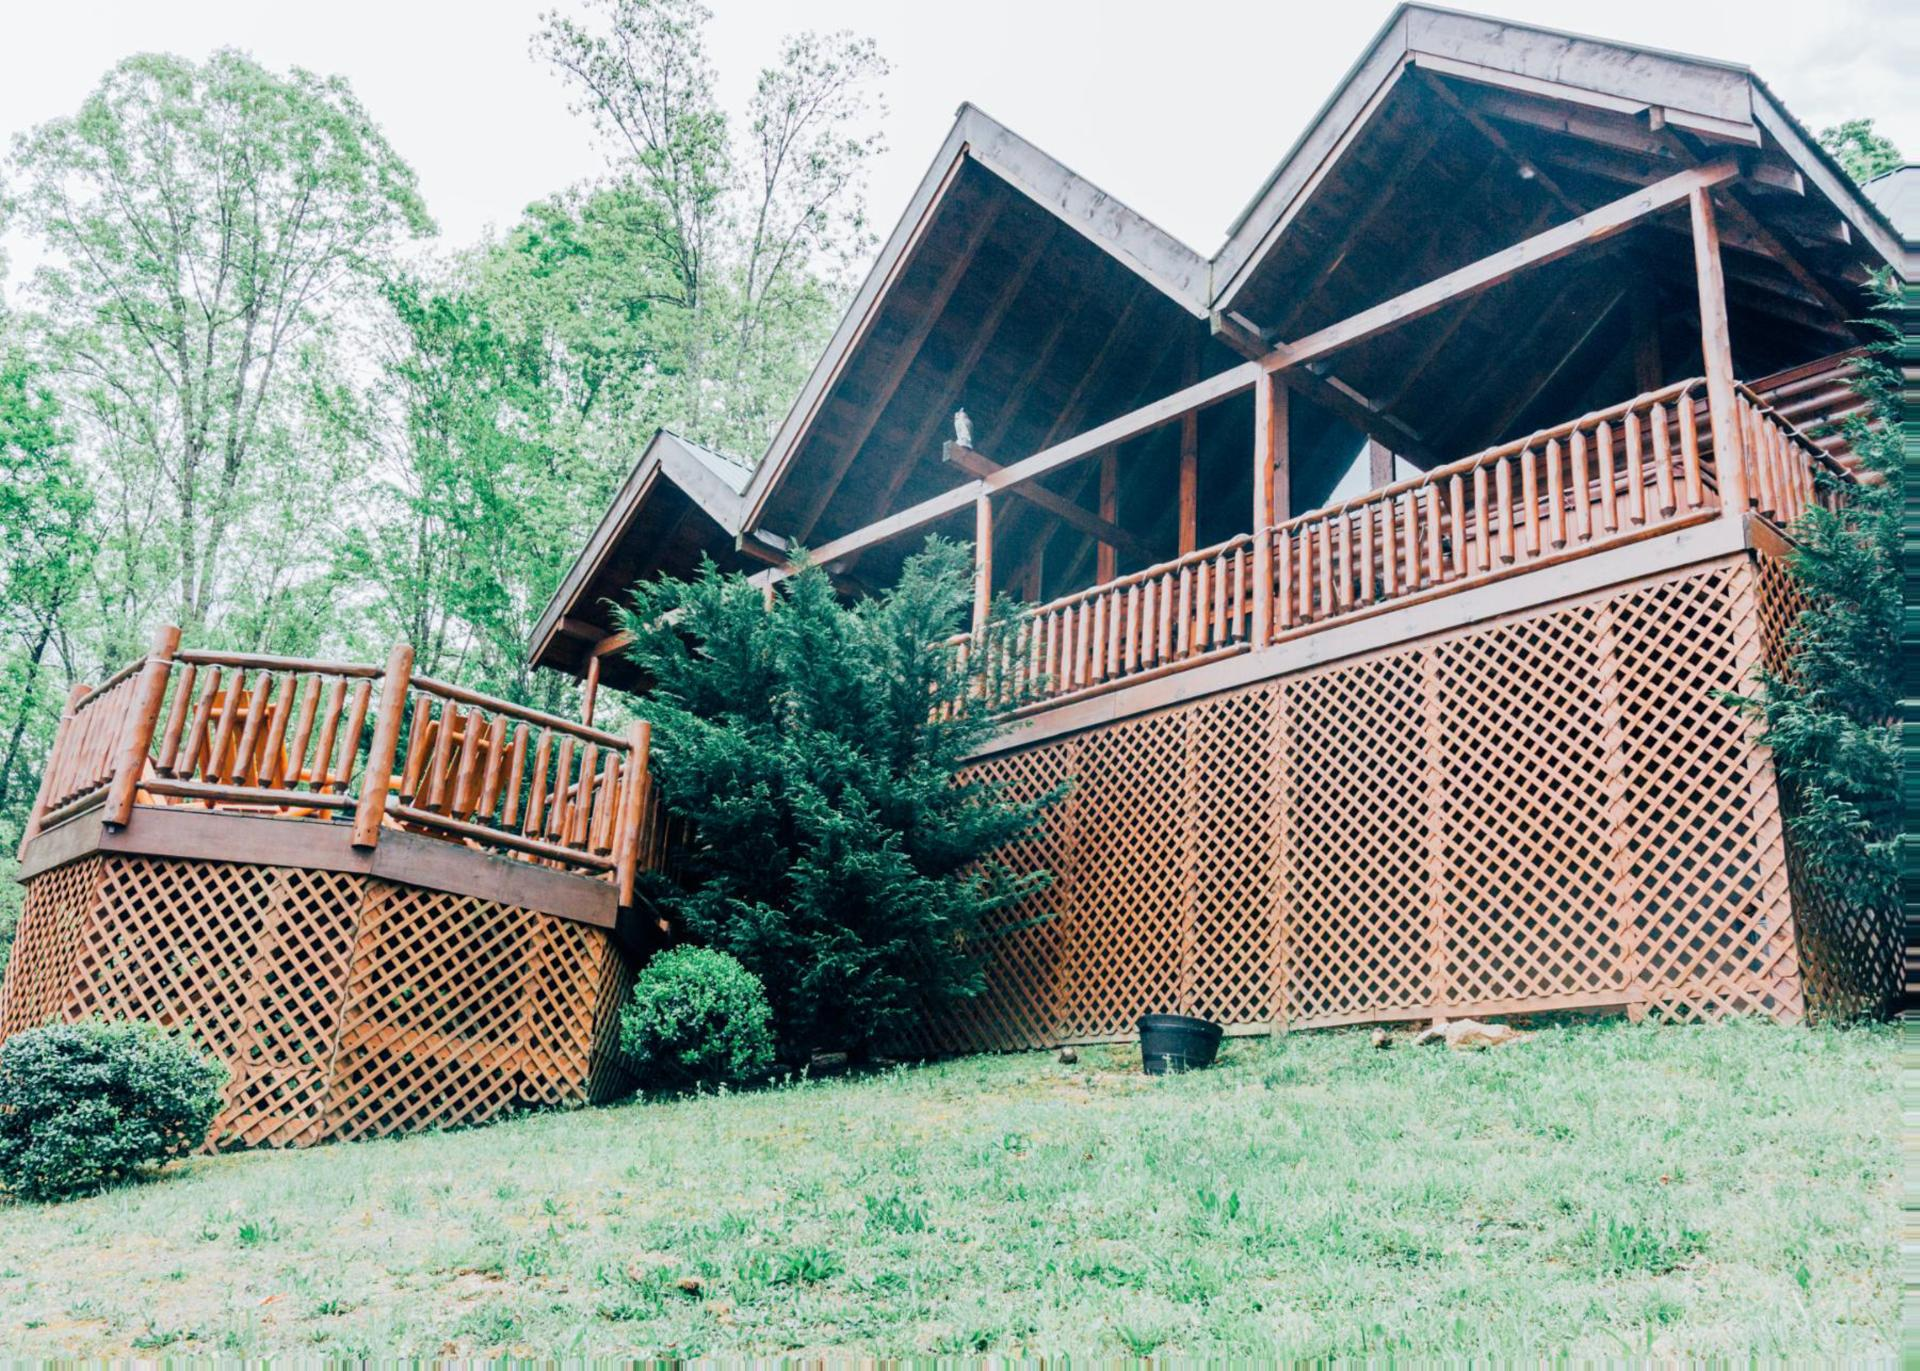 natural destinations us a s heavens brothers retreats louisiana cabin view is cove east six heaven sized sleeping states bath can in of cabins wears two the with choose queen log hot comfortably tubs guests united accommodation from valley bedroom cozy one